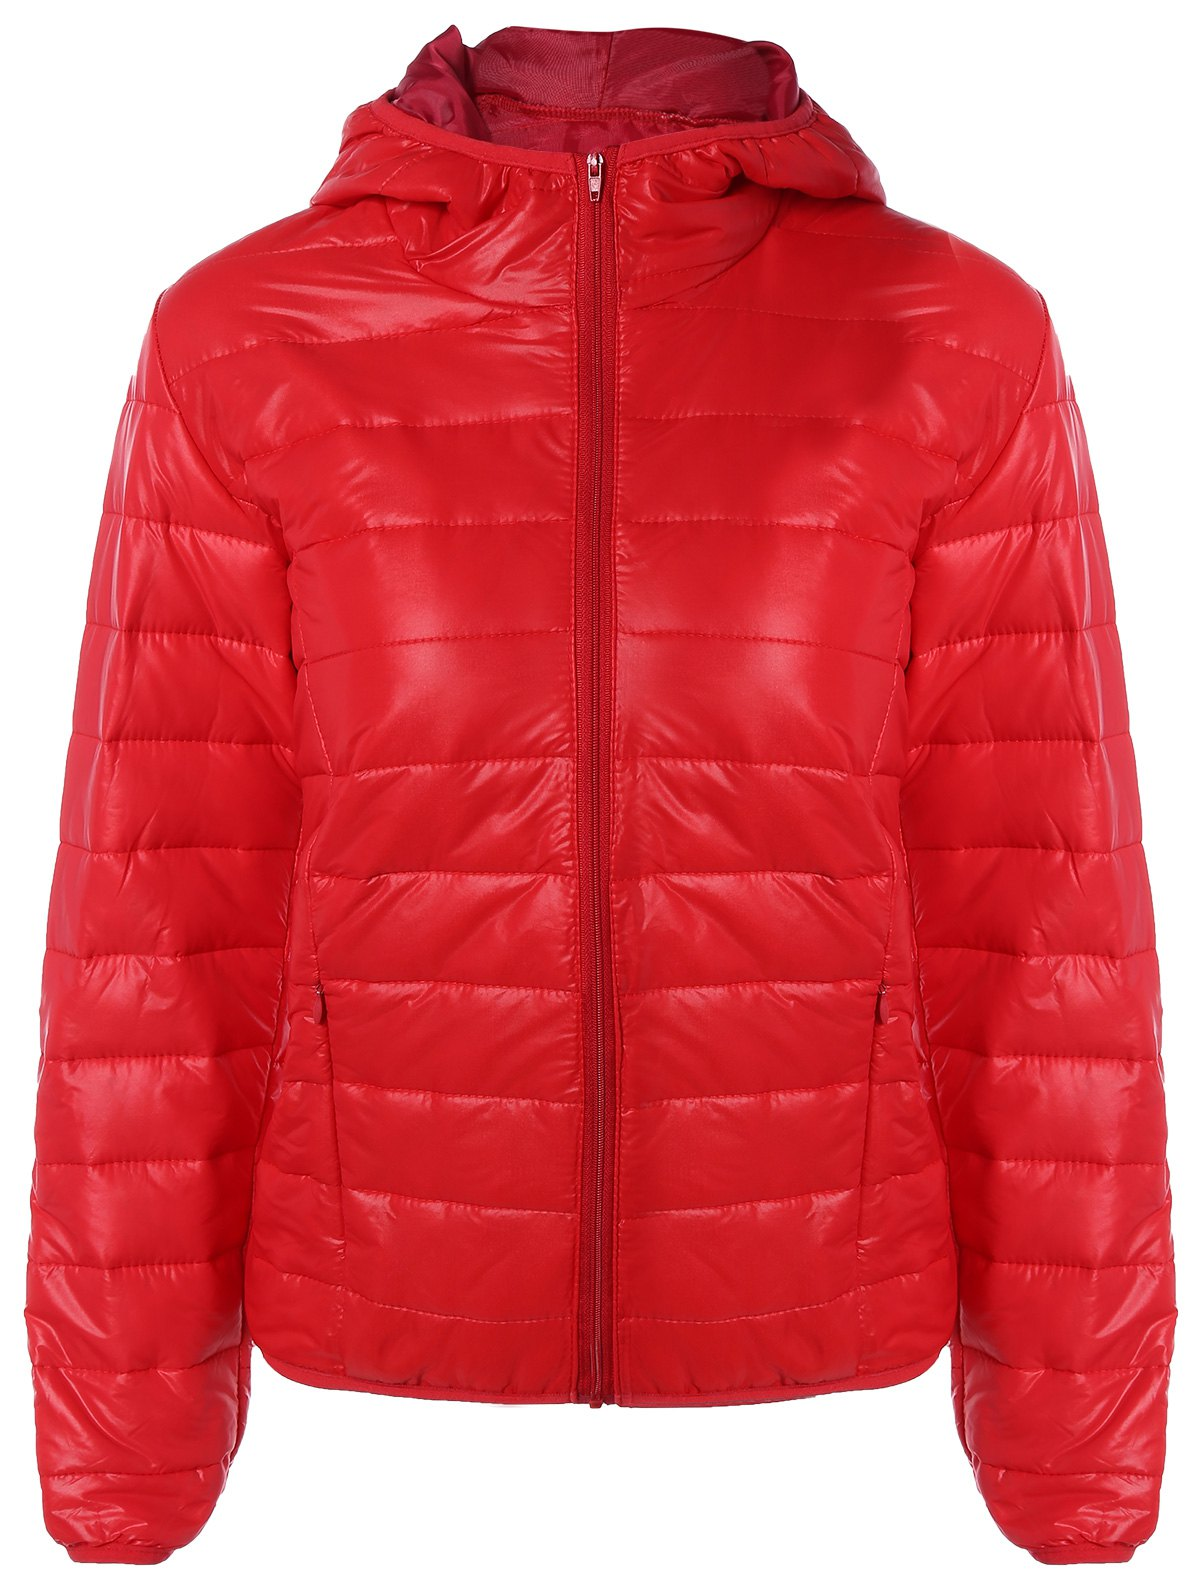 2018 Topstitching Hooded Quilted Winter Jacket RED S In Jackets ... : quilted winter jackets - Adamdwight.com